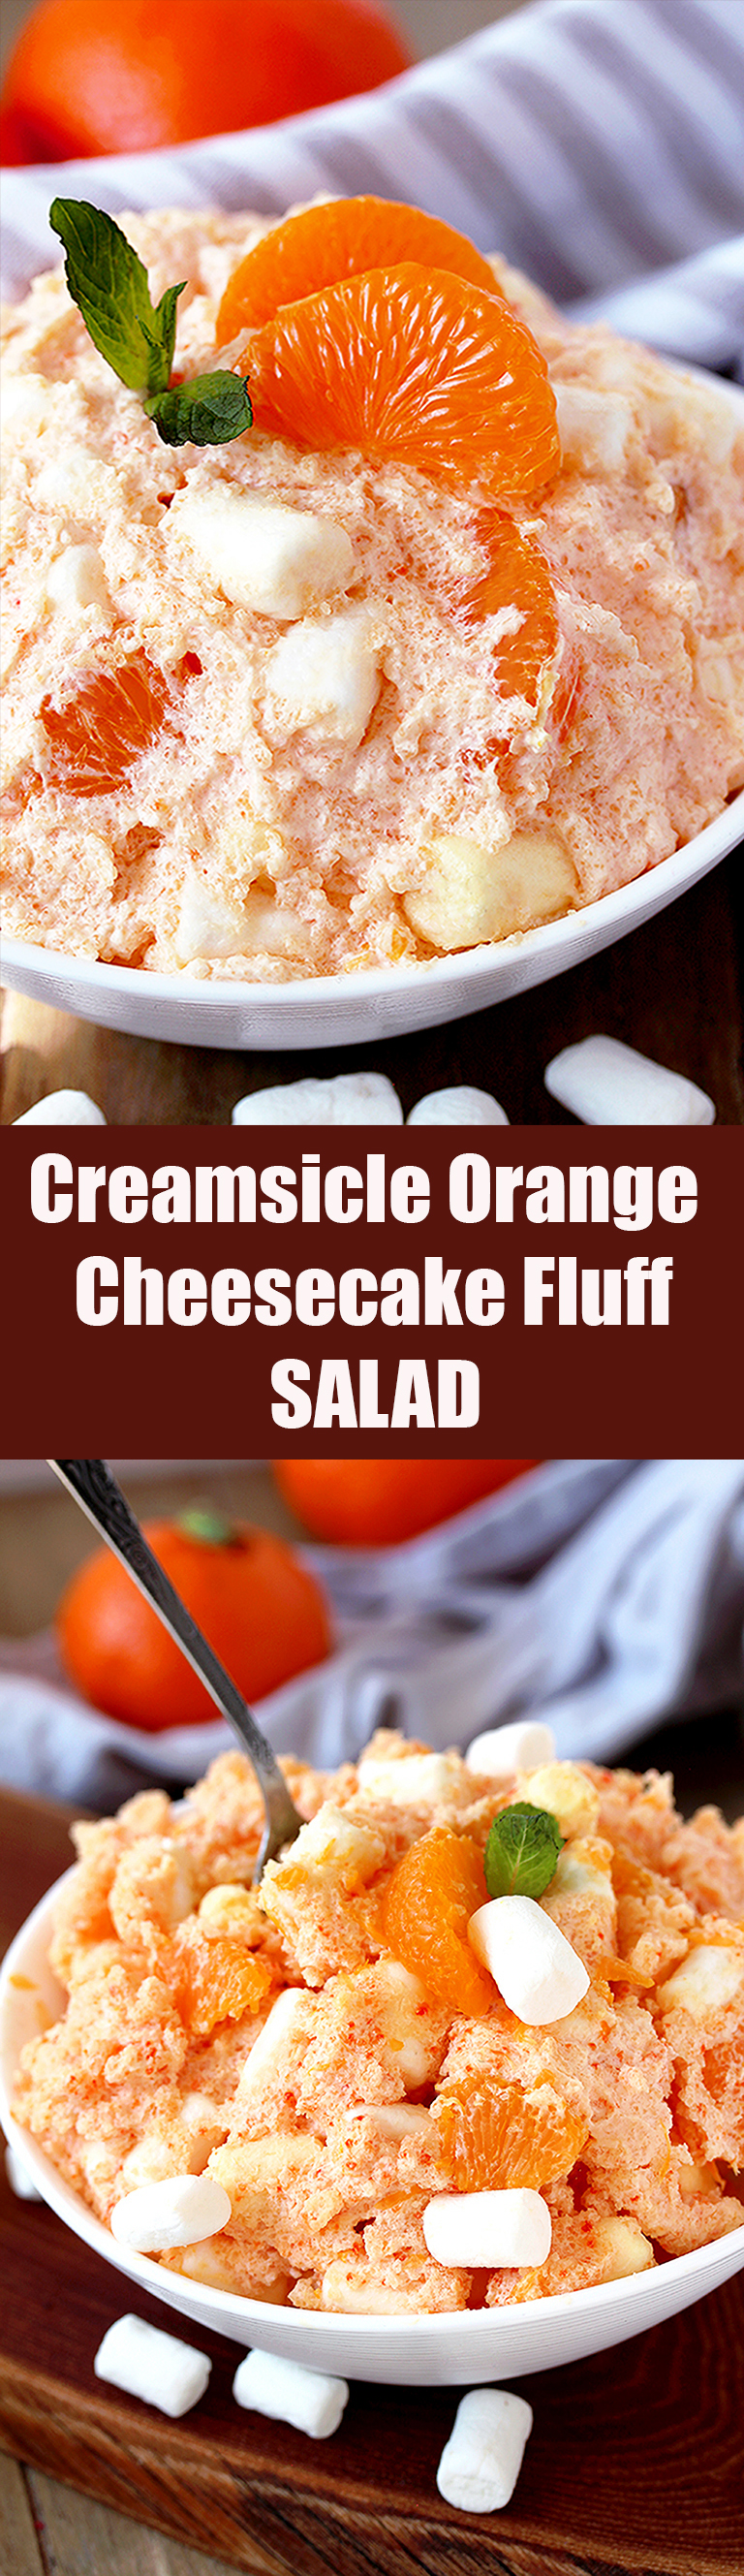 Creamsicle Orange Cheesecake Fluff Salad – this refreshing quick and easy salad is one of my favorite desserts. Cream cheese, Greek yogurt, orange juice and cool whip make this salad so creamy. Marshmallow melts in your mouth and mandarin oranges make it refreshing.